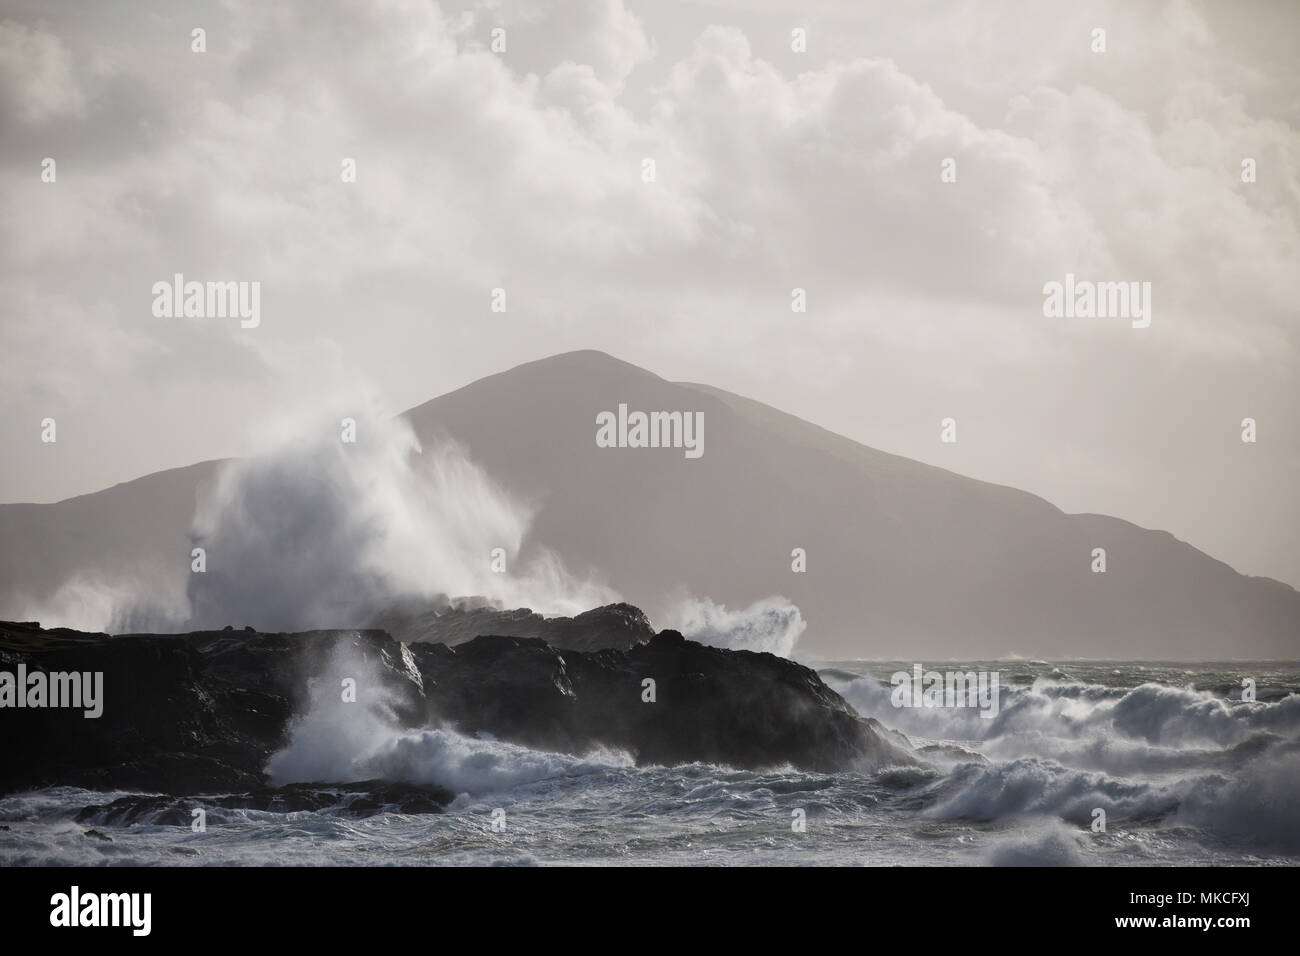 Waves breaking on the coastline of Achill Island County Mayo Ireland with Clare Island in the background. - Stock Image